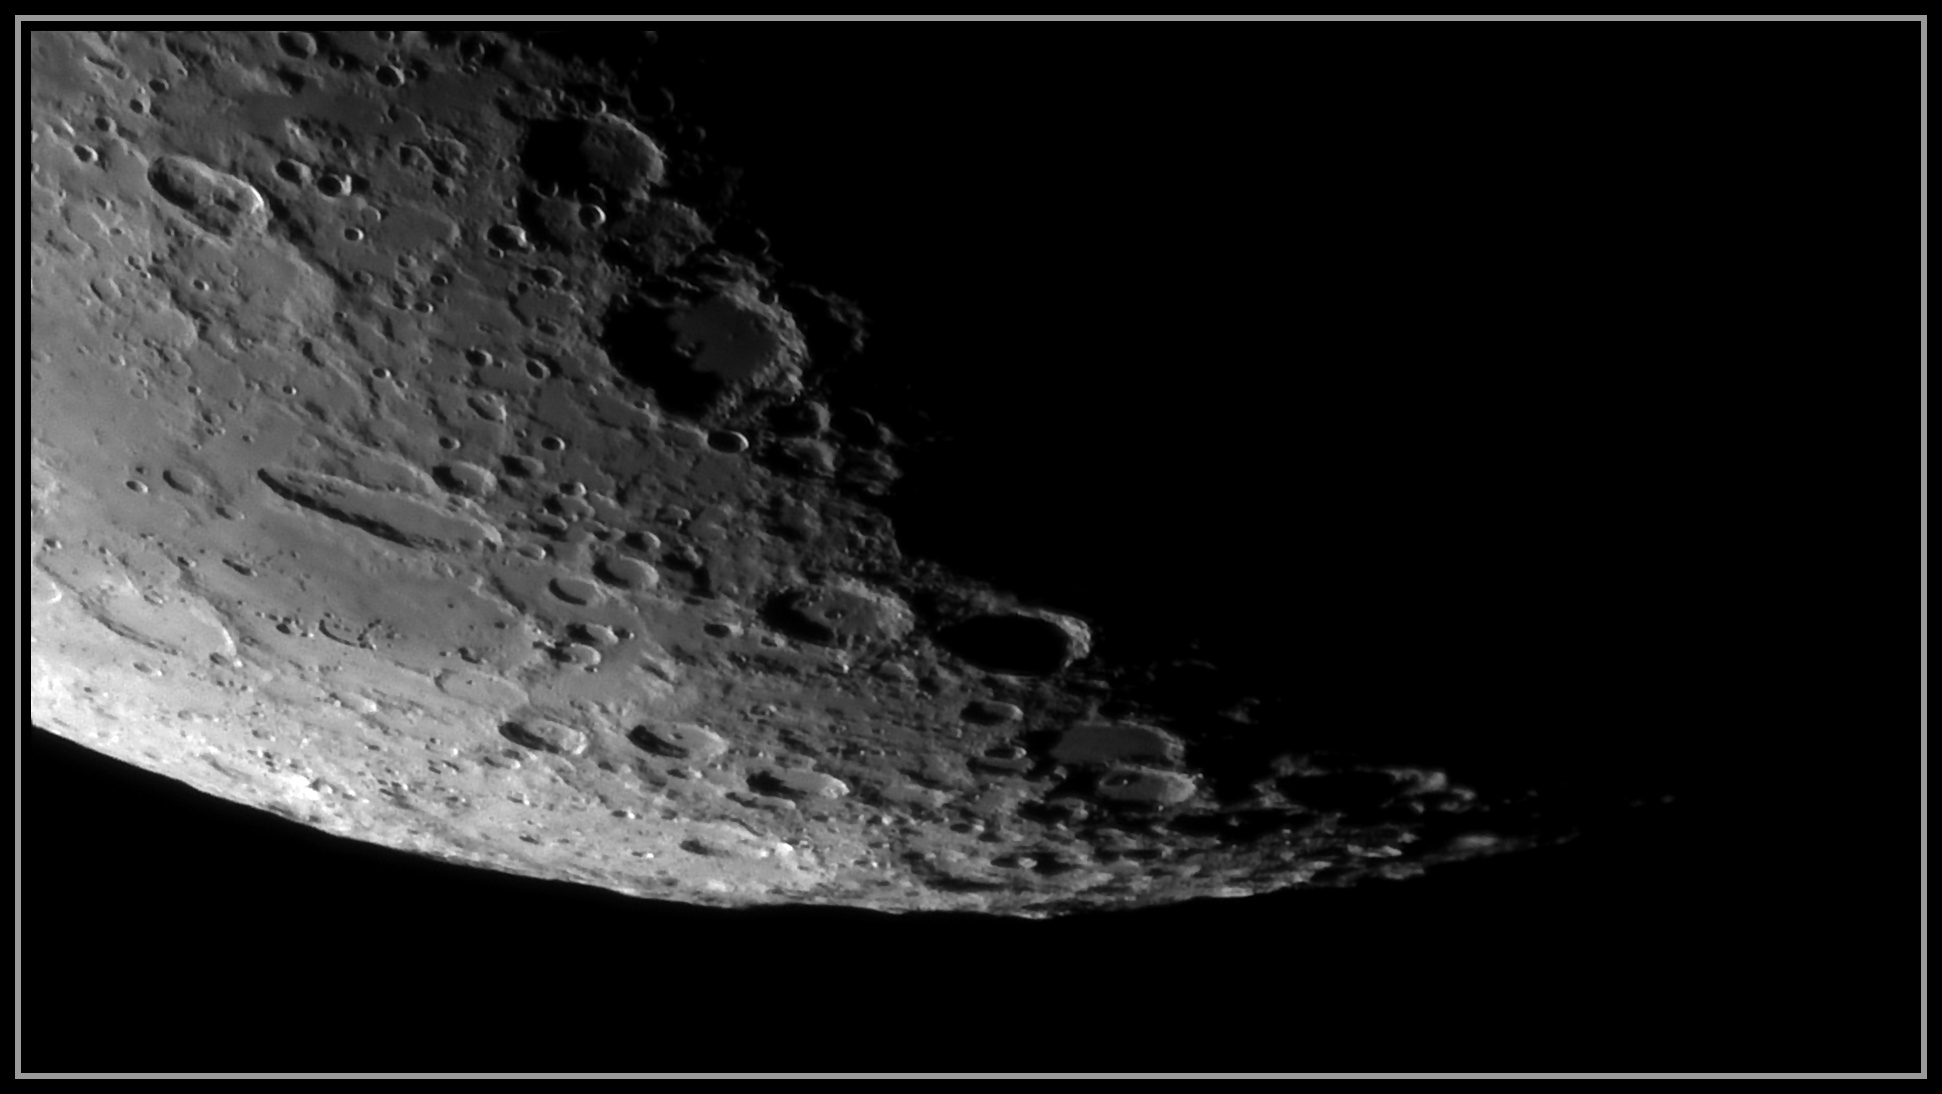 5e28a1982c805_Moon_075022_190120_ZWOASI290MM_IR_742nm_AS_P25_lapl6_ap373.jpg.90fd547feb5a7017e0983907cccd6712.jpg